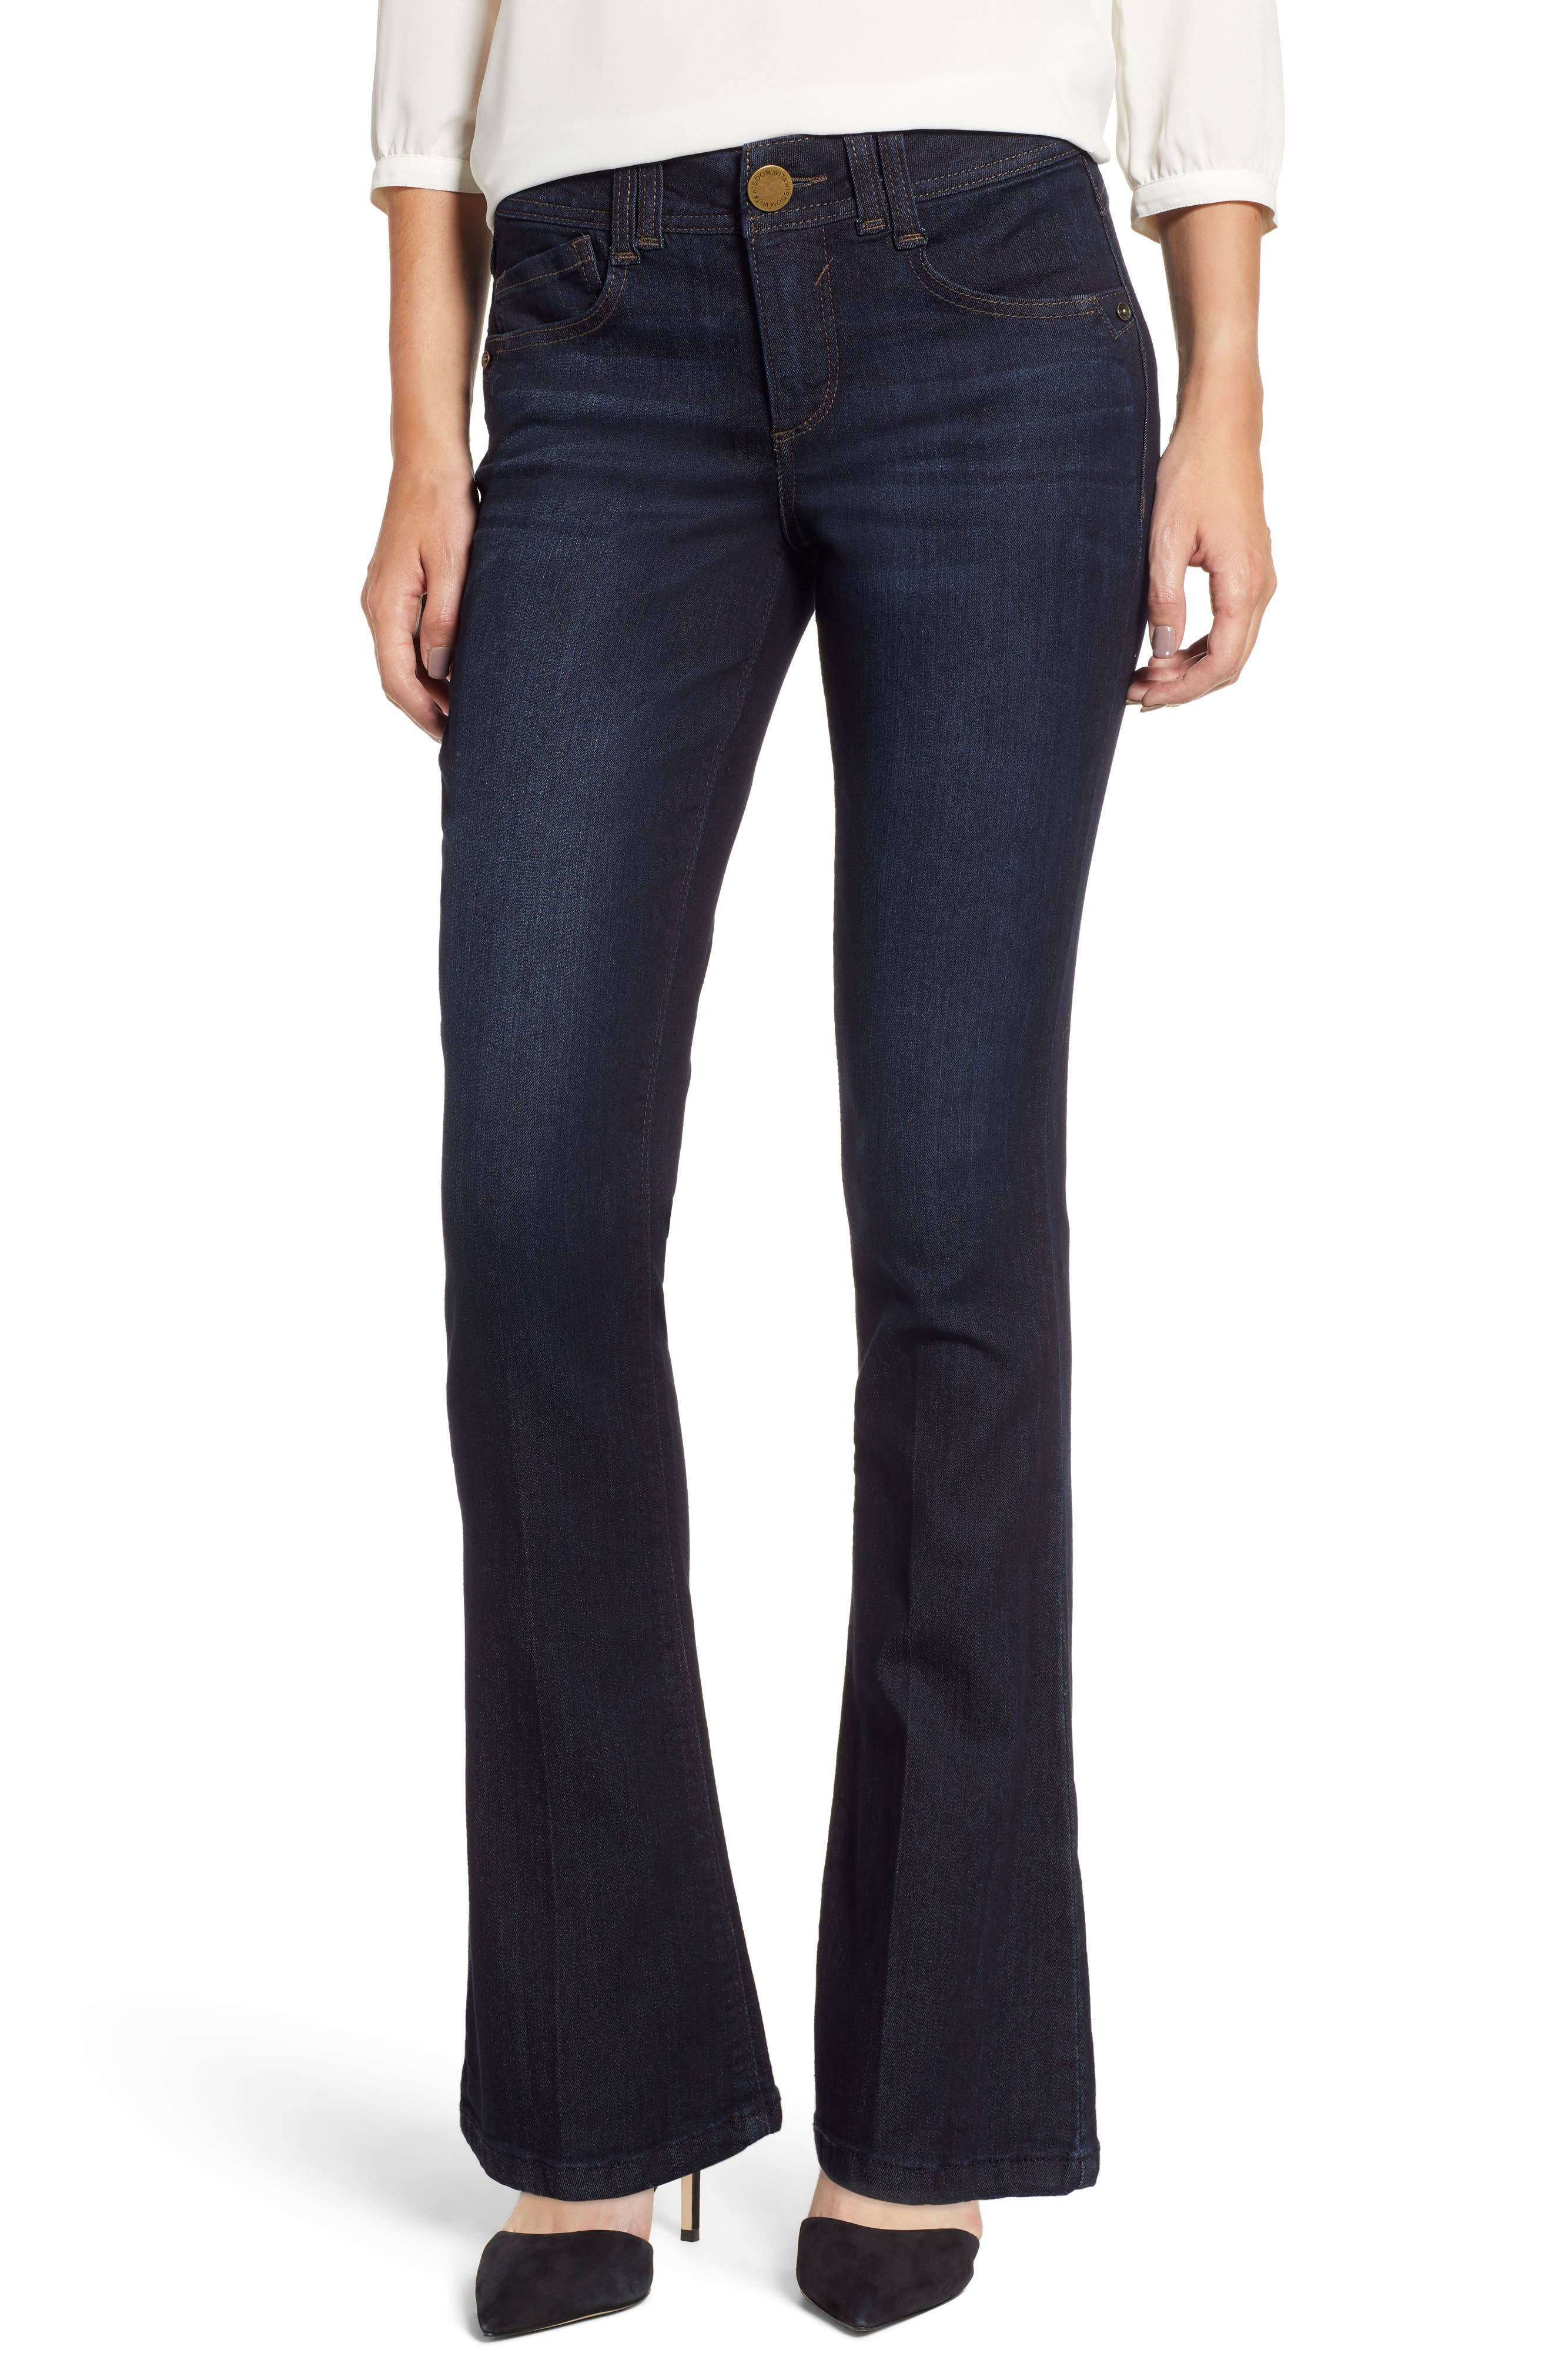 Ab-solution Itty Bitty Bootcut Jeans,                         Main,                         color, INDIGO